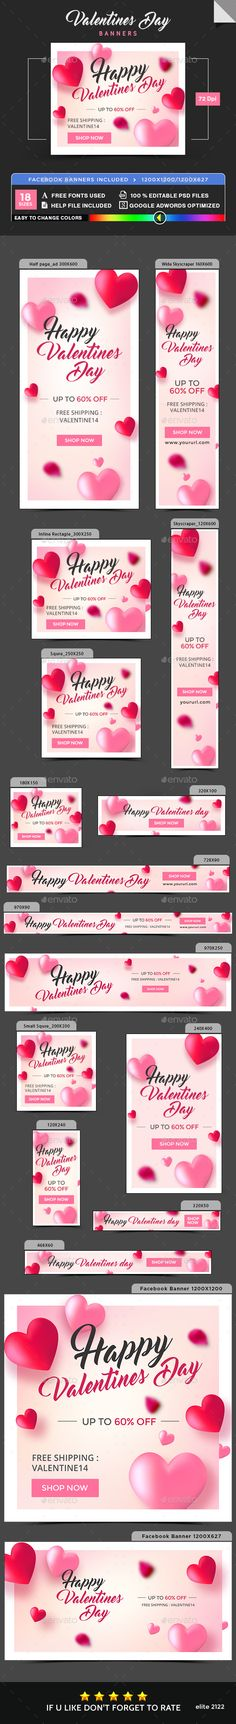 Valentines Day Banners - Image Included - Template PSD